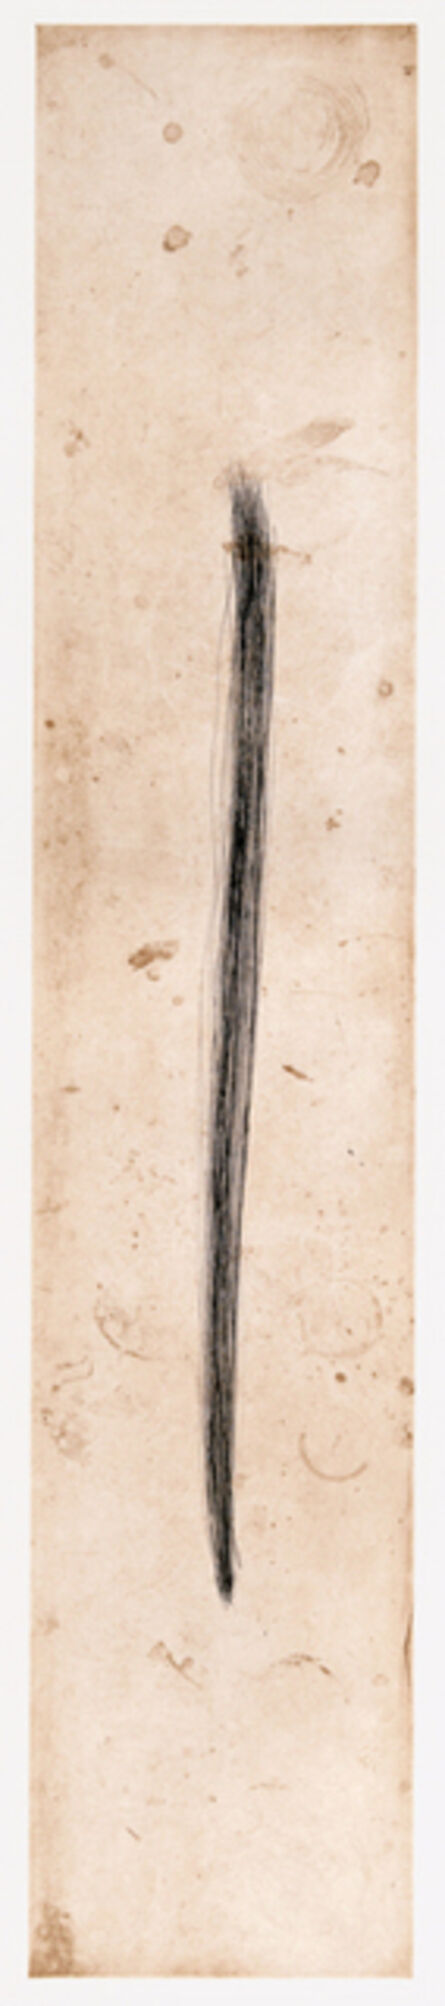 Tom Marioni, 'Drawing a Line', 2012